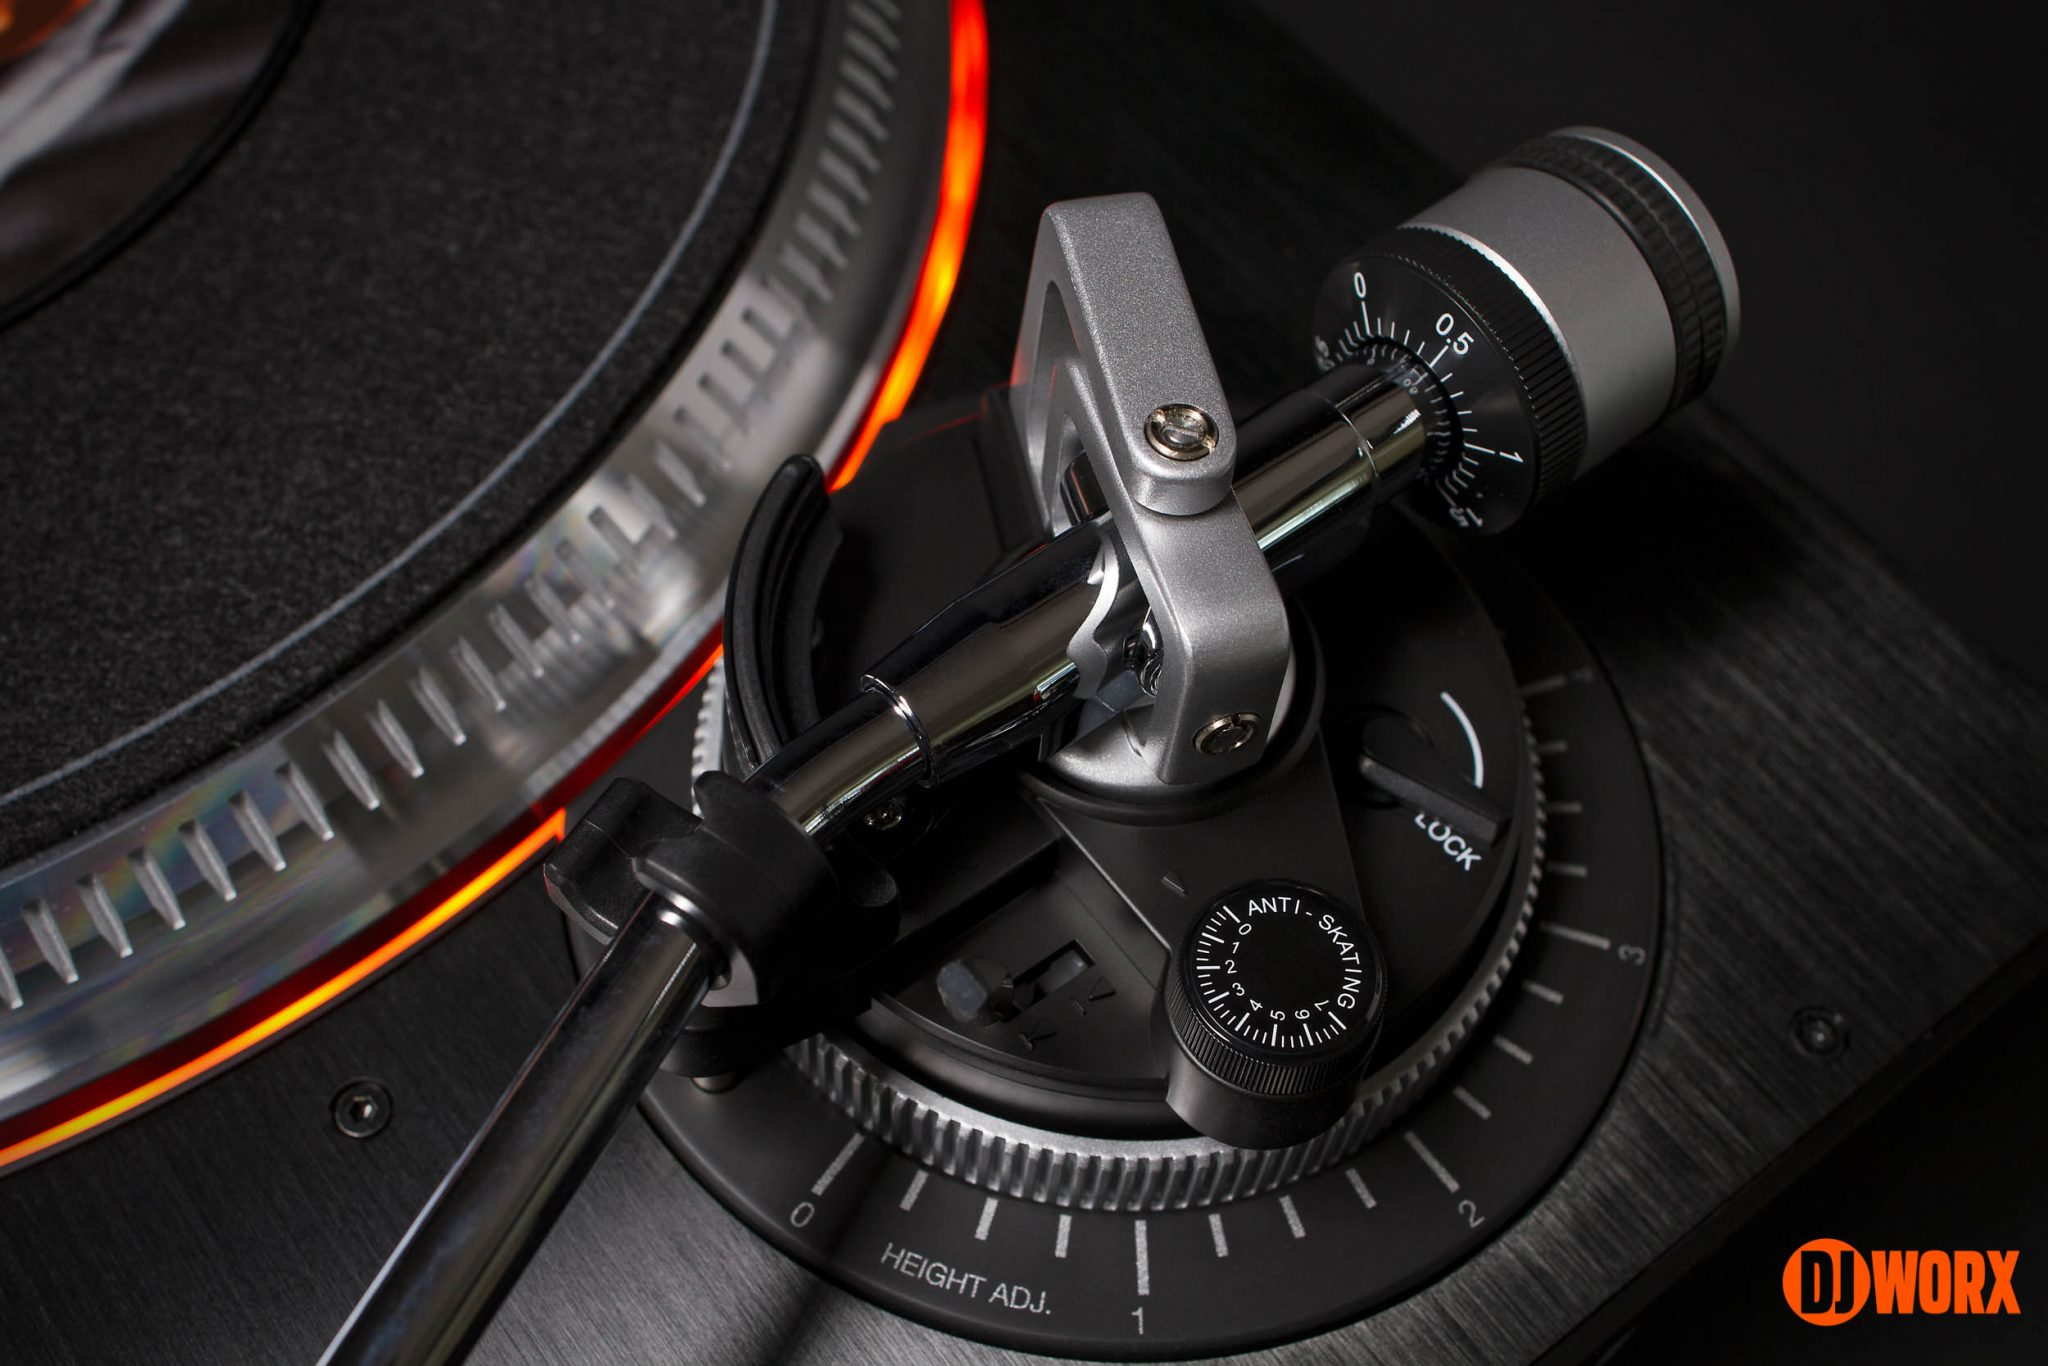 Denon DJ L12 Prime turntable review DJWORX (10)